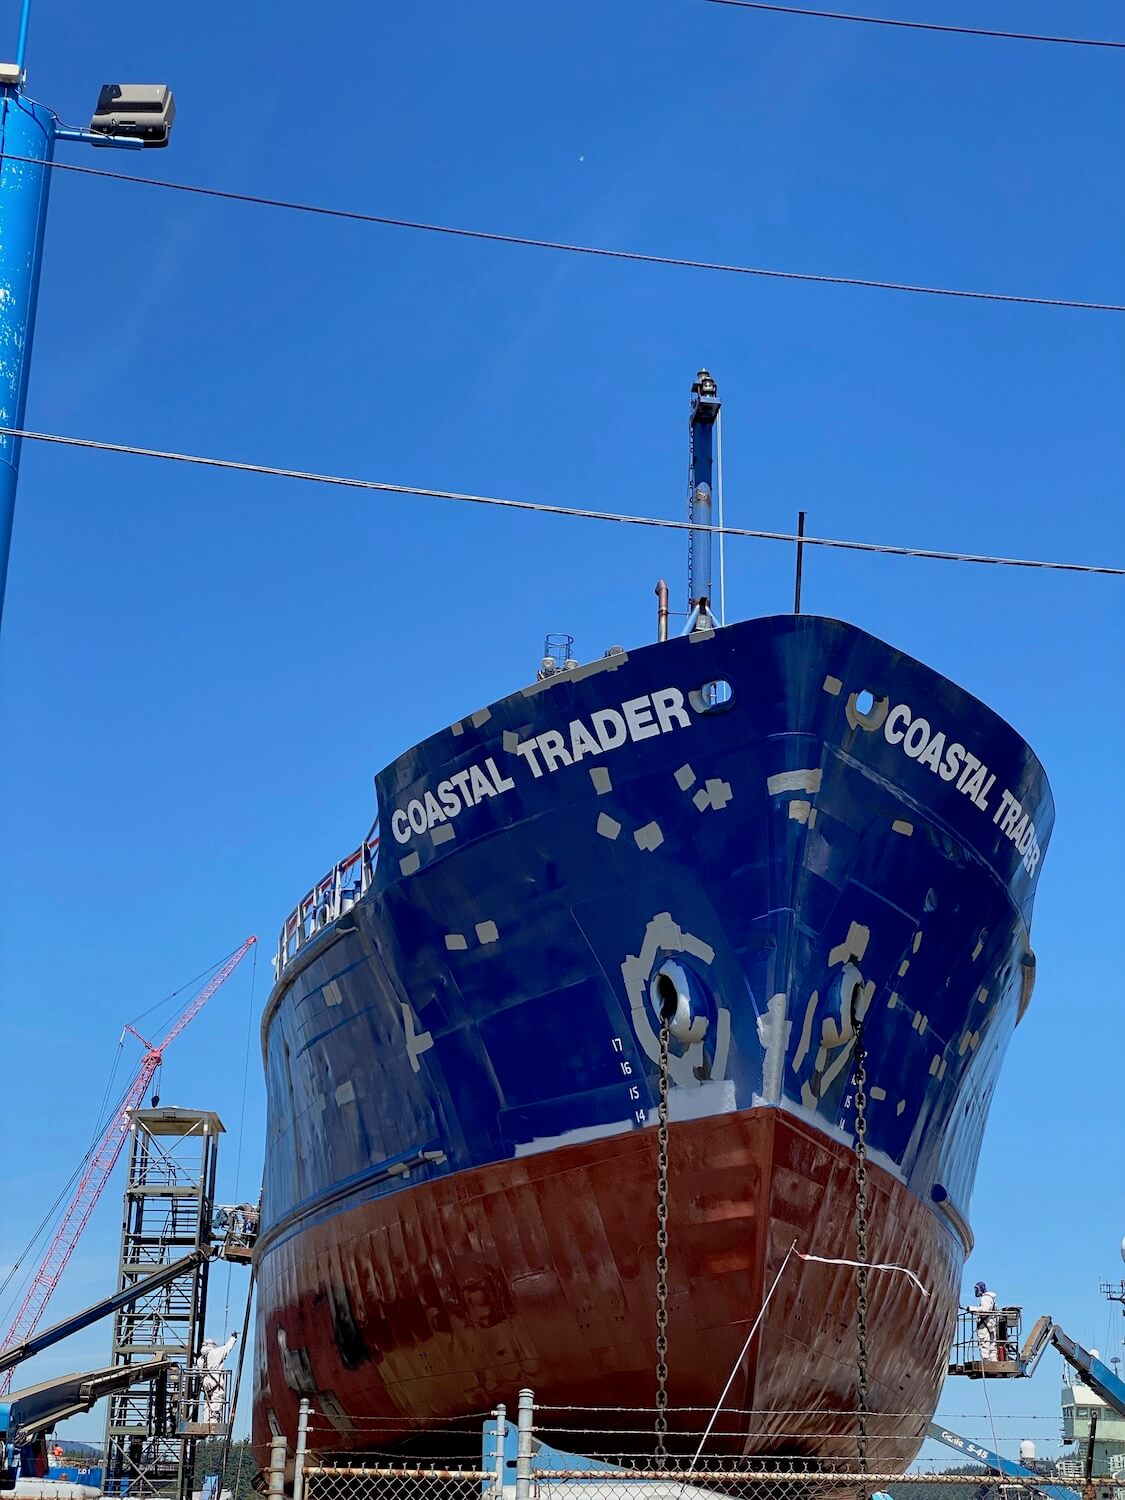 A large ship is in dry dock with large patches of gray paint dotting the otherwise dark blue hull of the vessel.  The underwater line section of the metal is painted red.  Cranes and workers are operating around the ship.